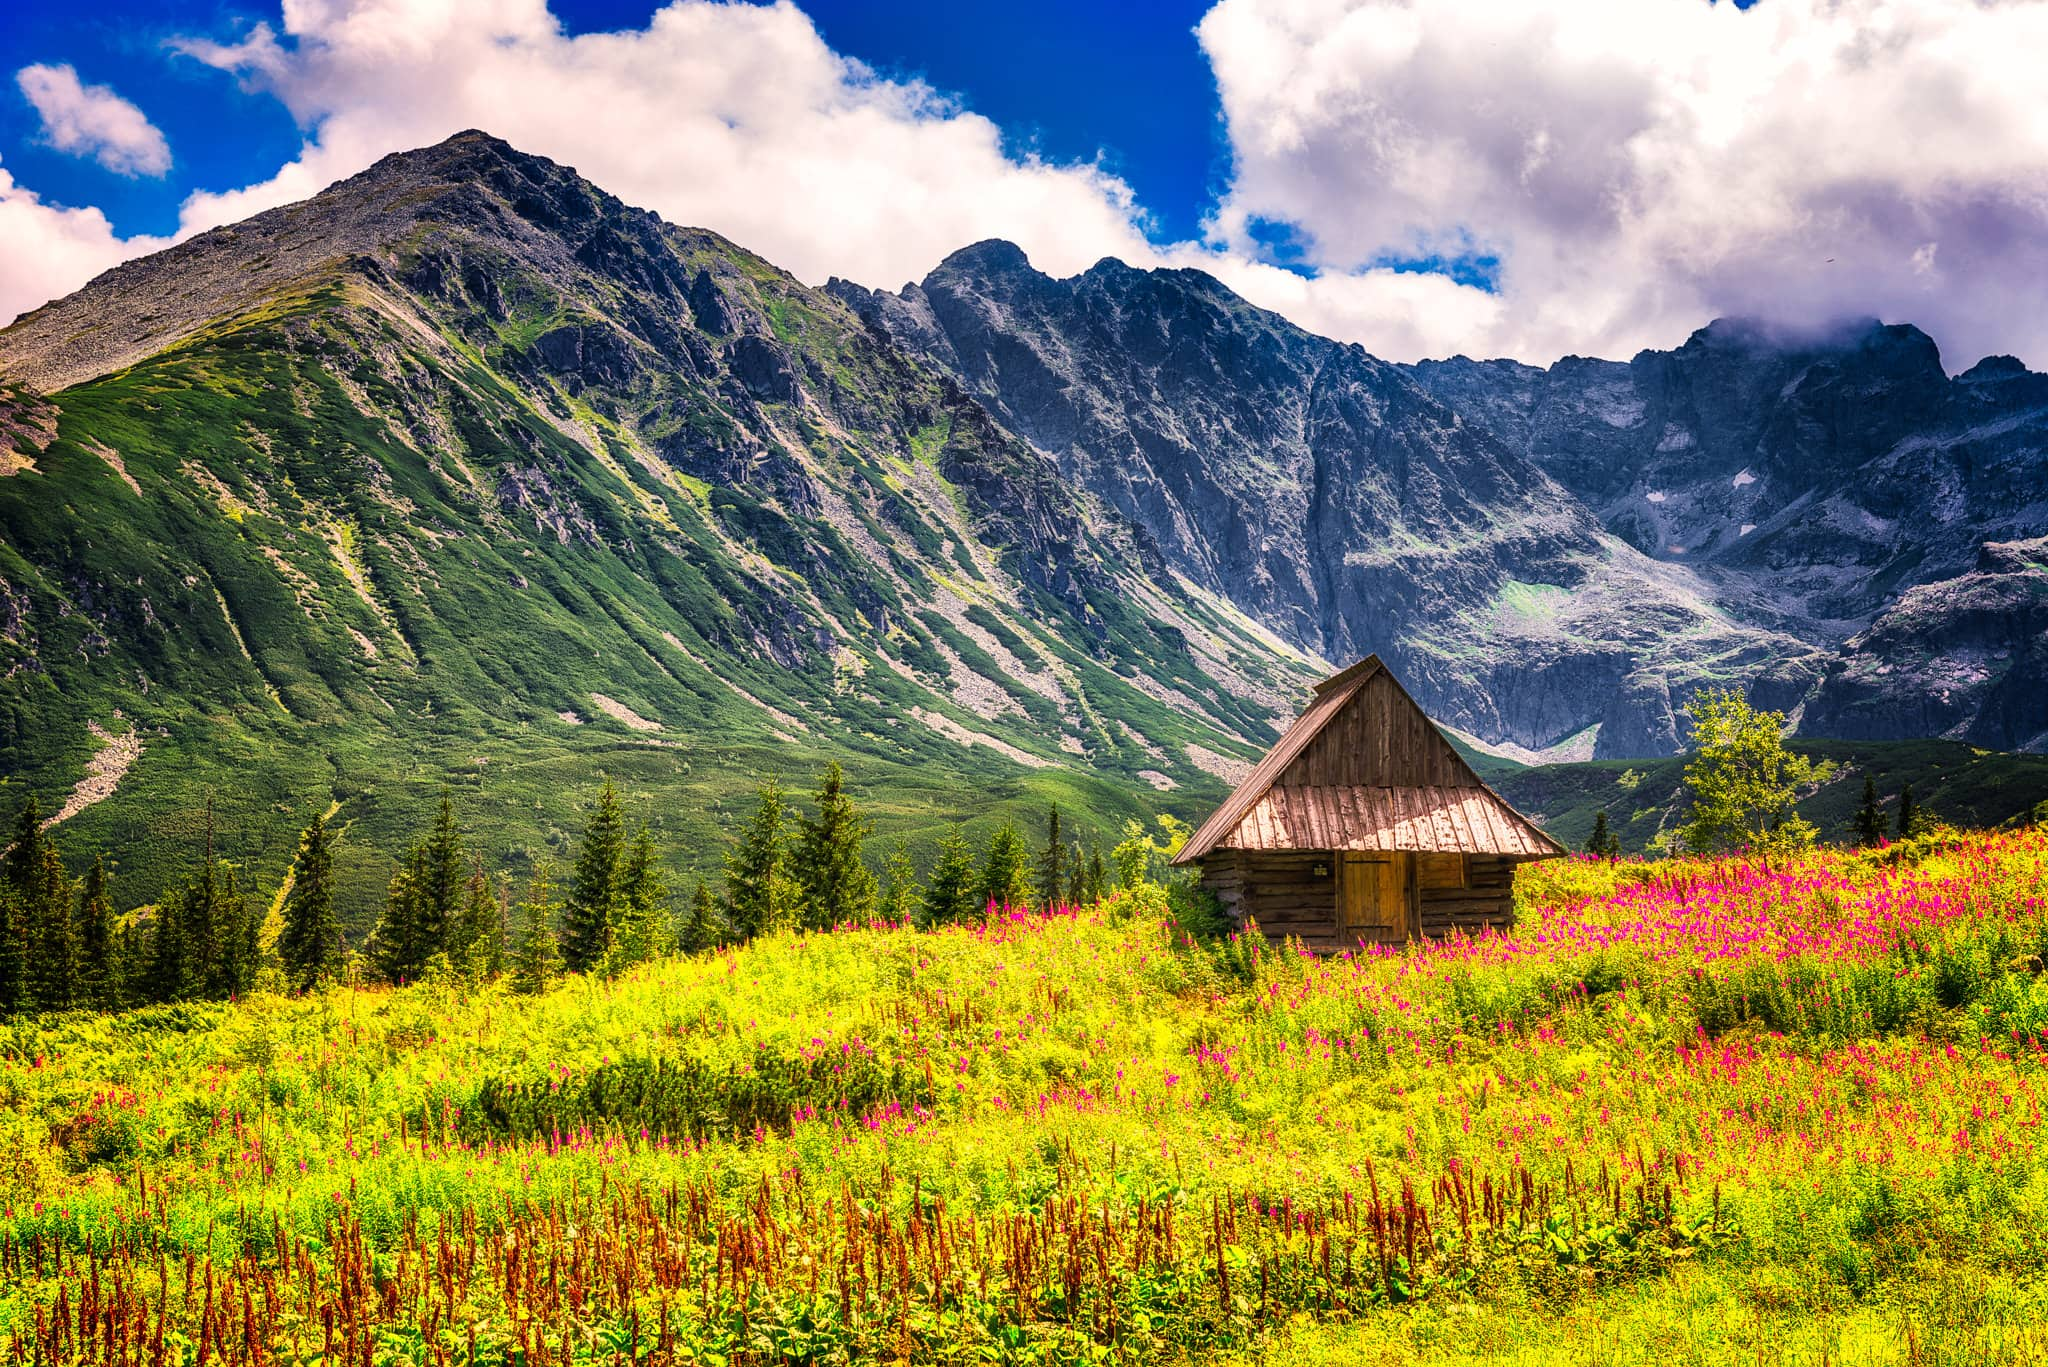 De Hala Gąsienicowa hut, die is gelegen in het Tatra Nationaal Park in Polen.